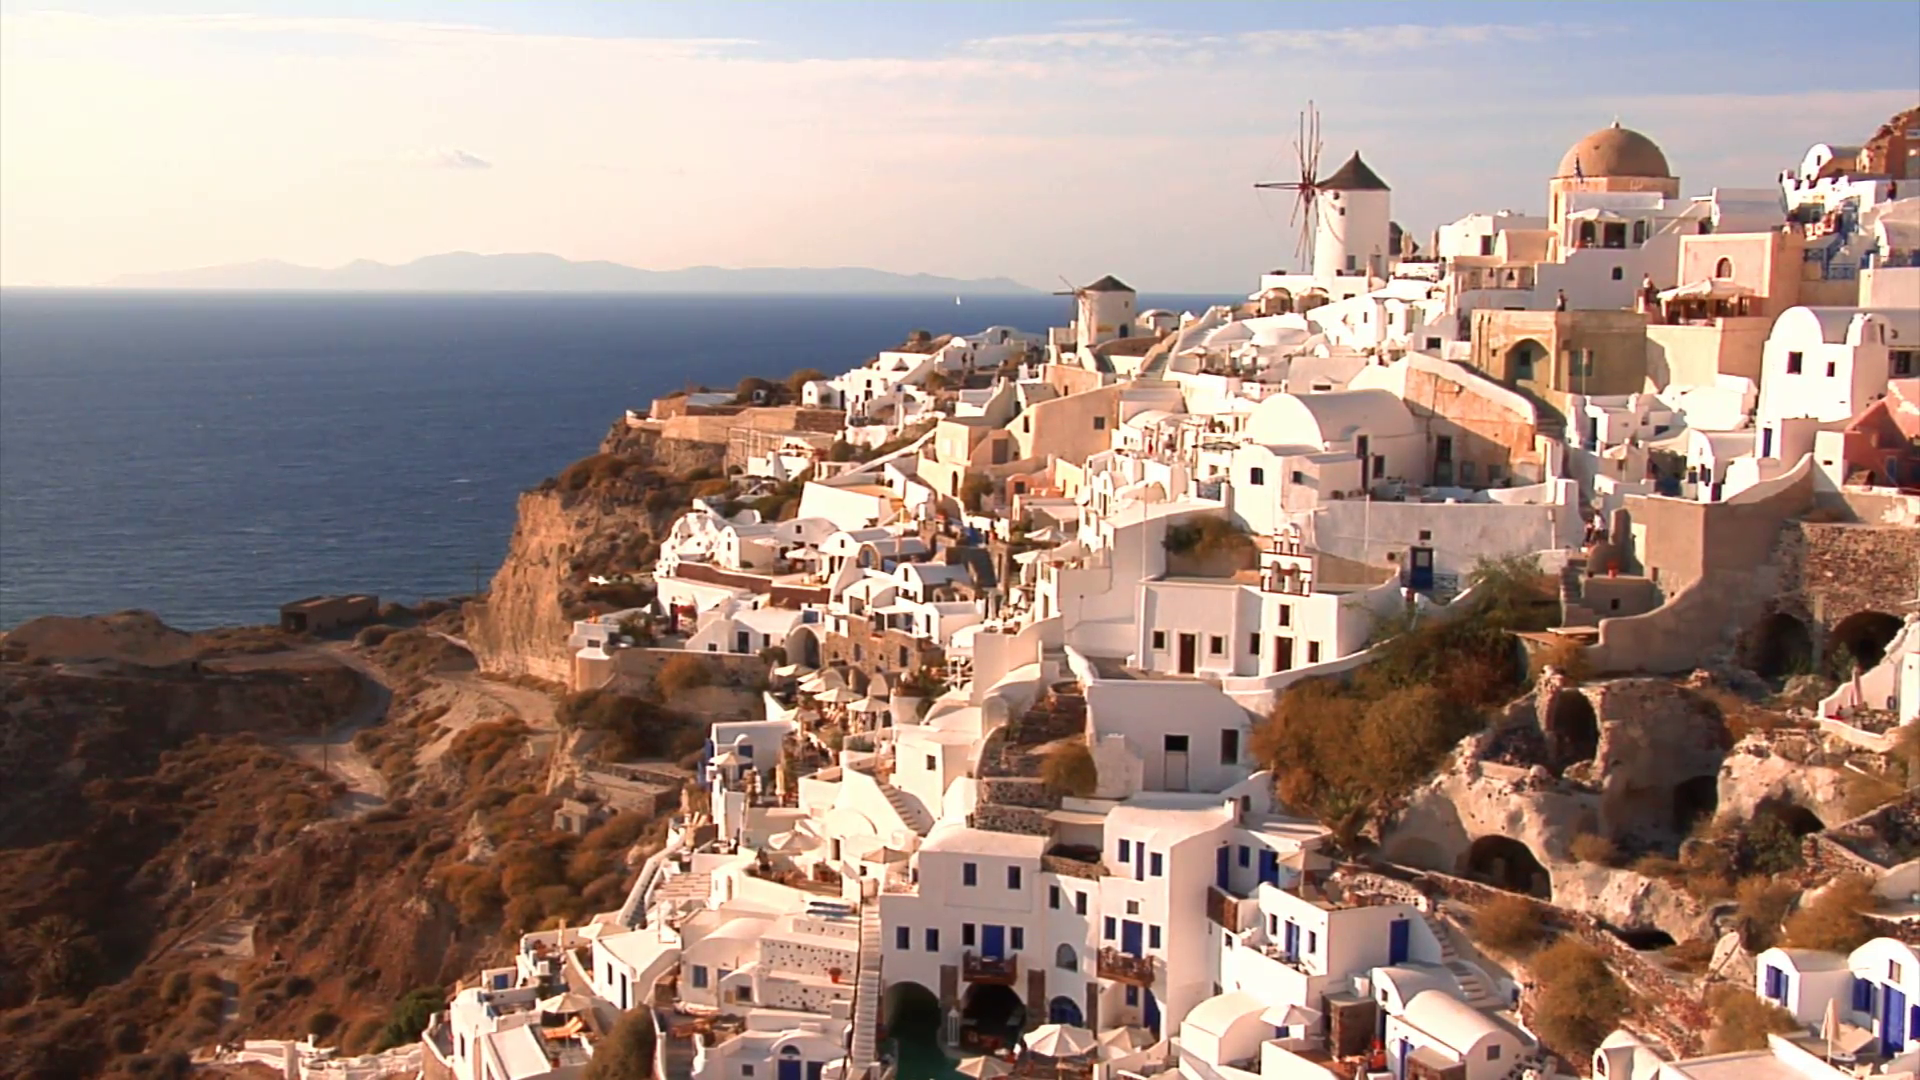 Oia Windmills wallpaper Gallery 1920x1080